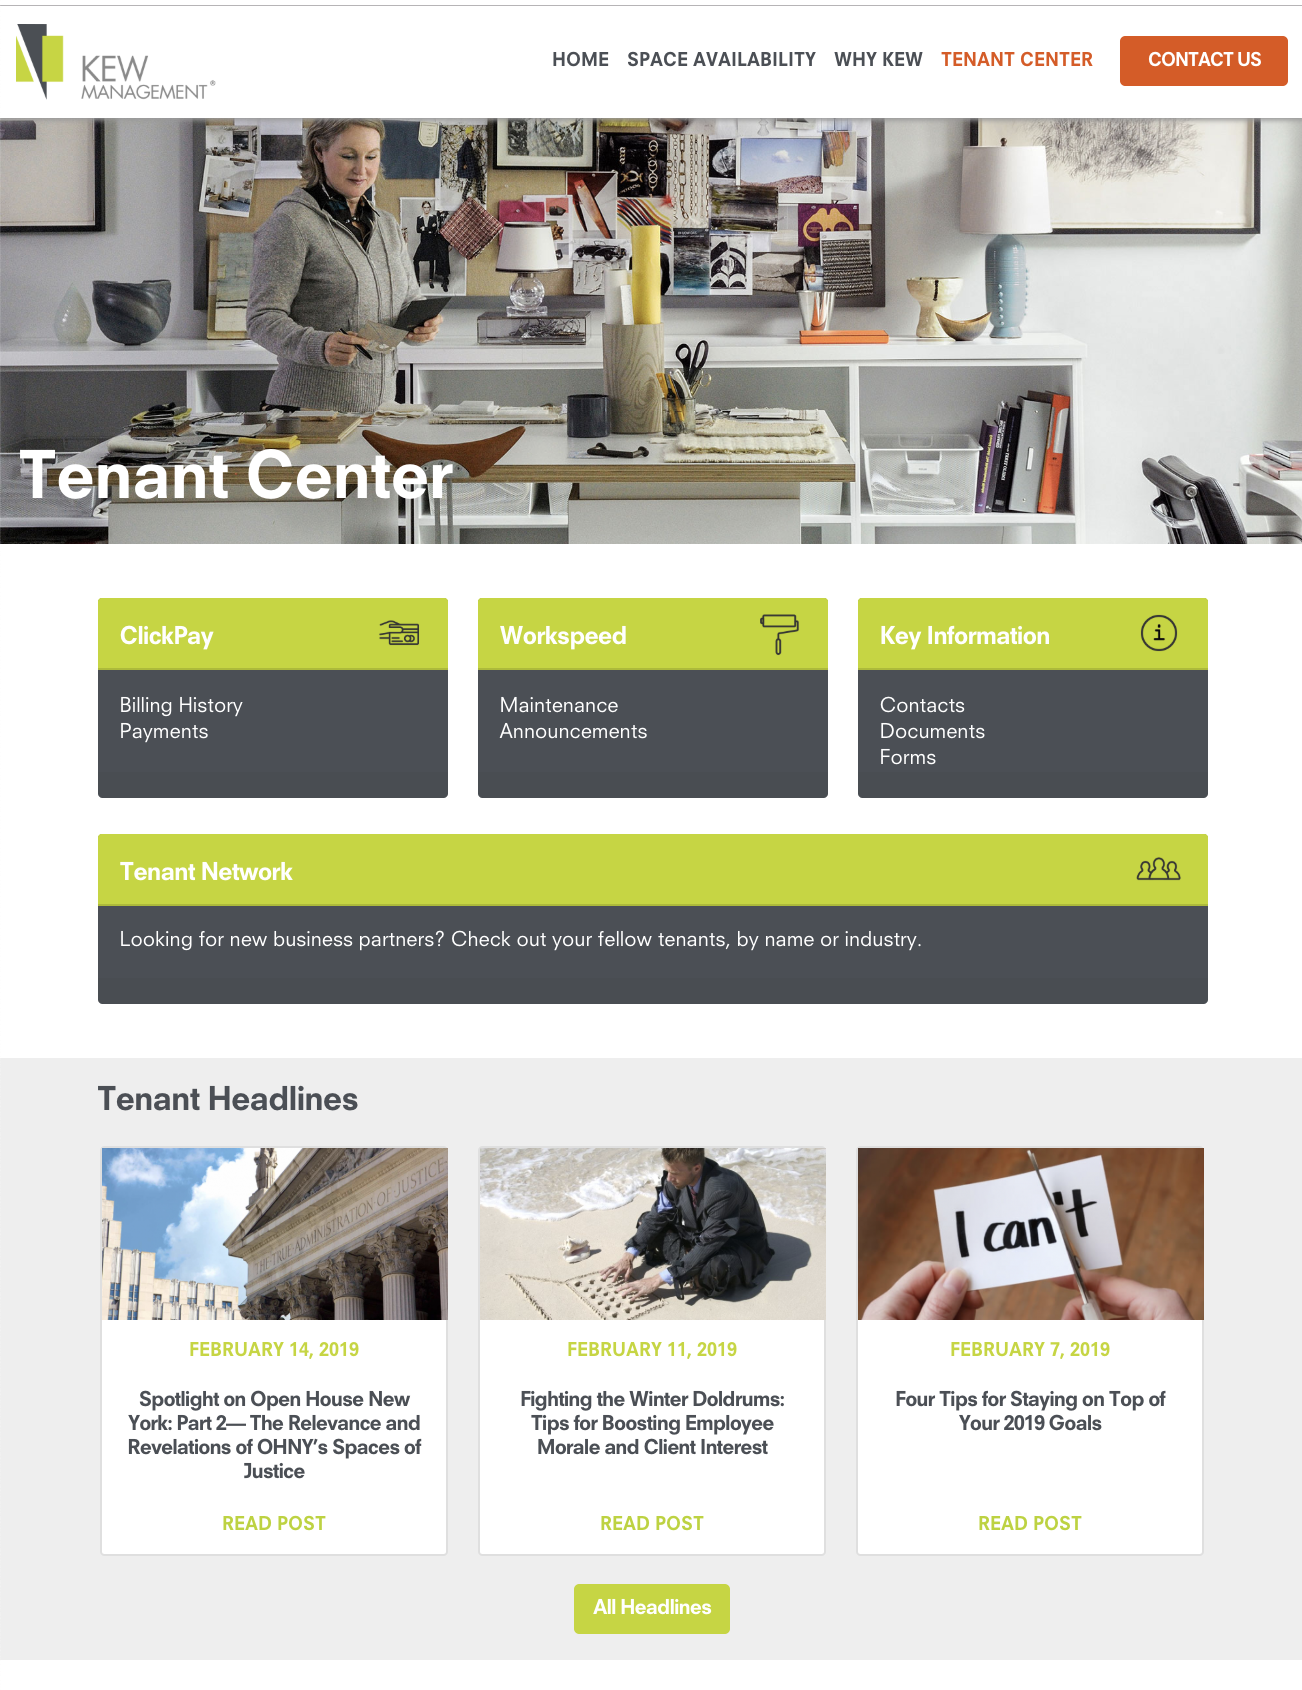 Making Your Experience Better: Our New Online Tenant Center